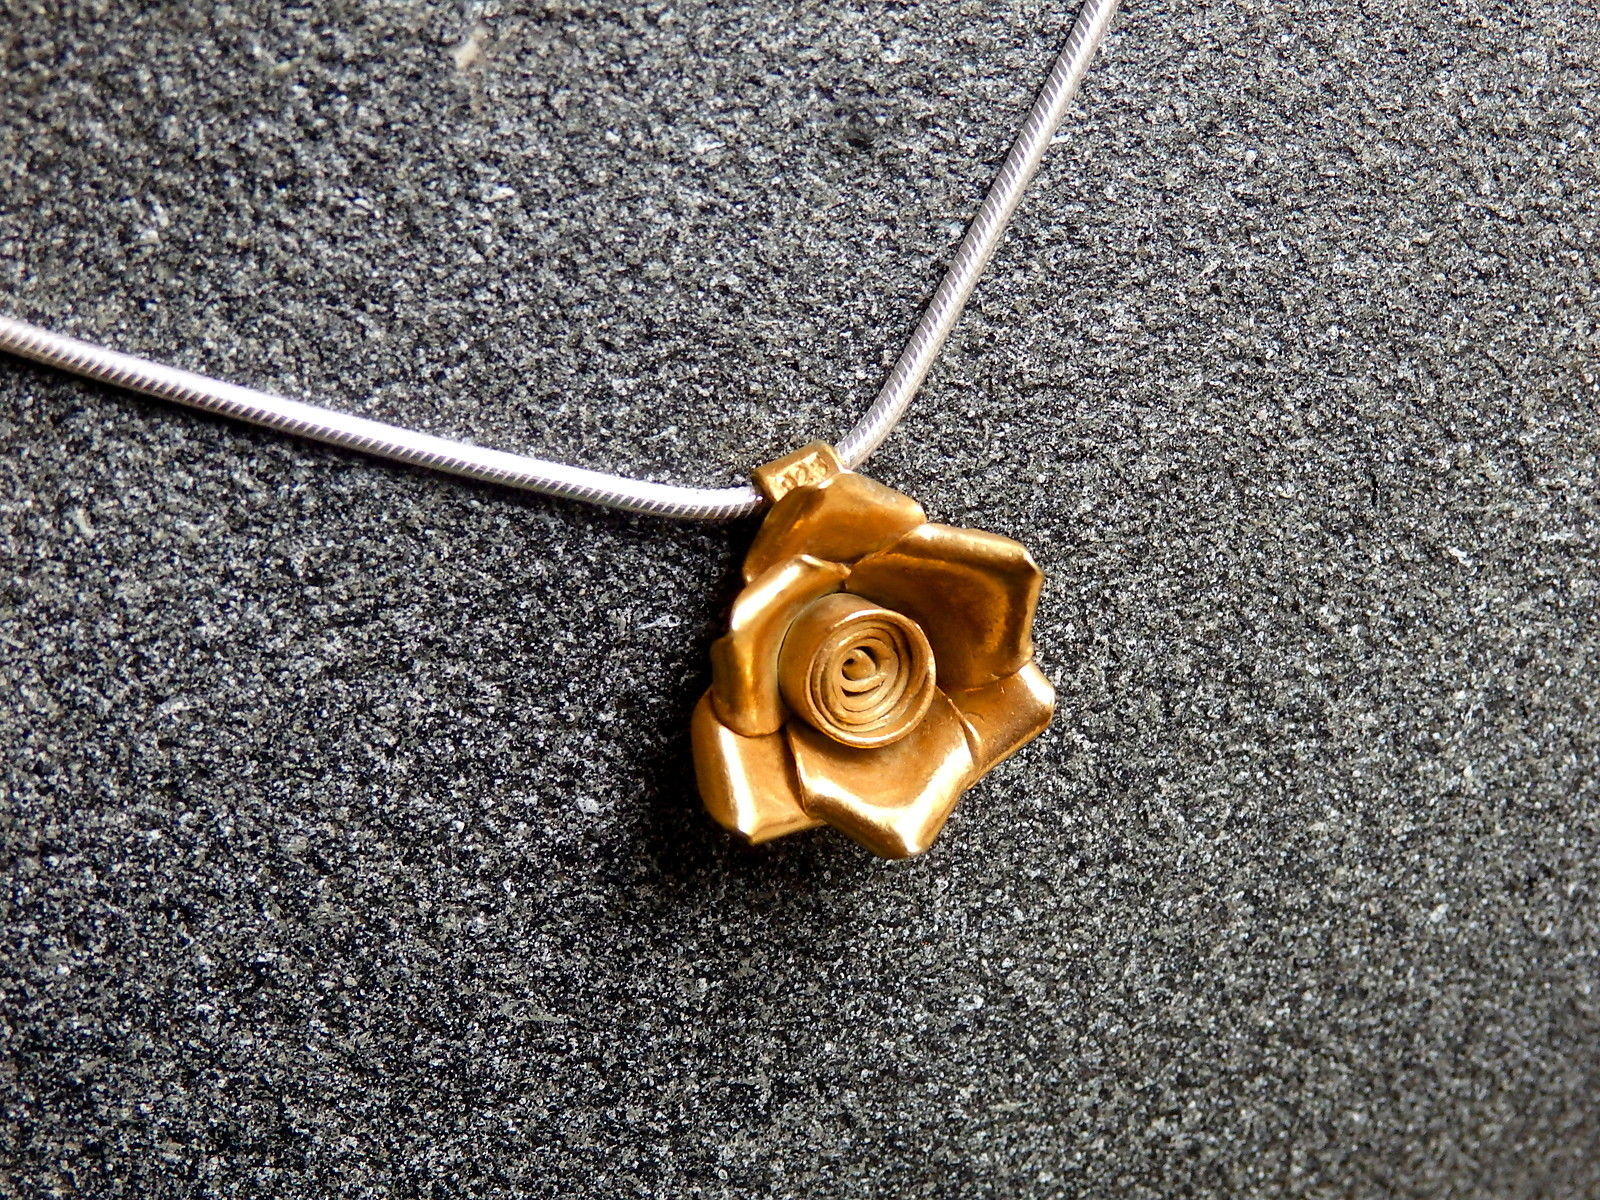 designer kette silber 925 anh nger rose blume vergoldet 40 cm leguan schmuck design. Black Bedroom Furniture Sets. Home Design Ideas